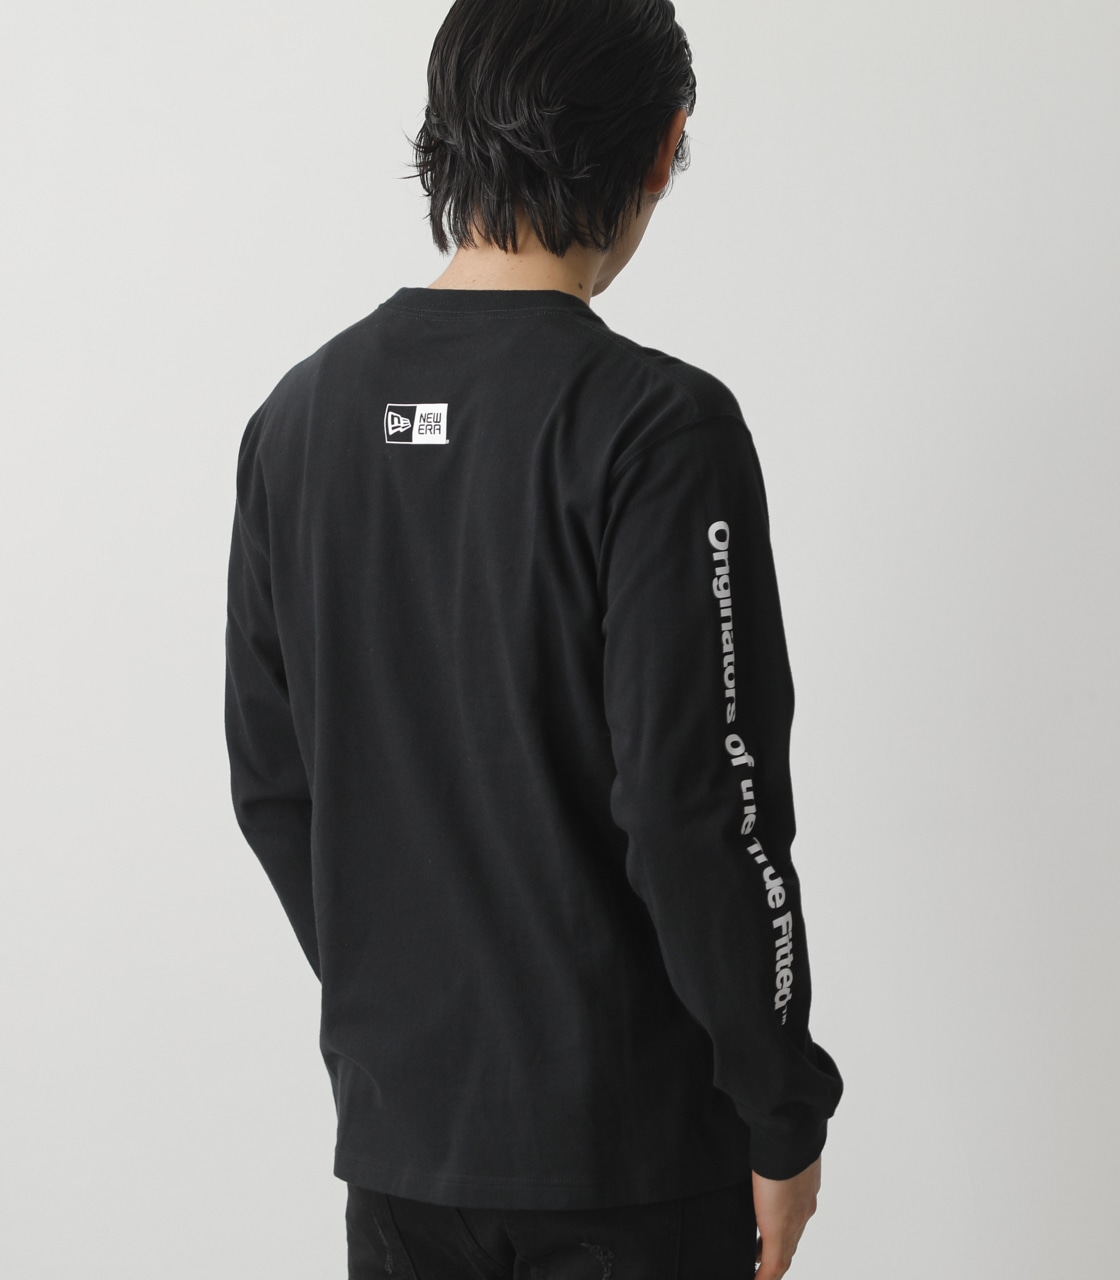 NEW ERA×AZUL LONG T-SHIRTS/NEW ERA×AZULロングTシャツ 詳細画像 BLK 2